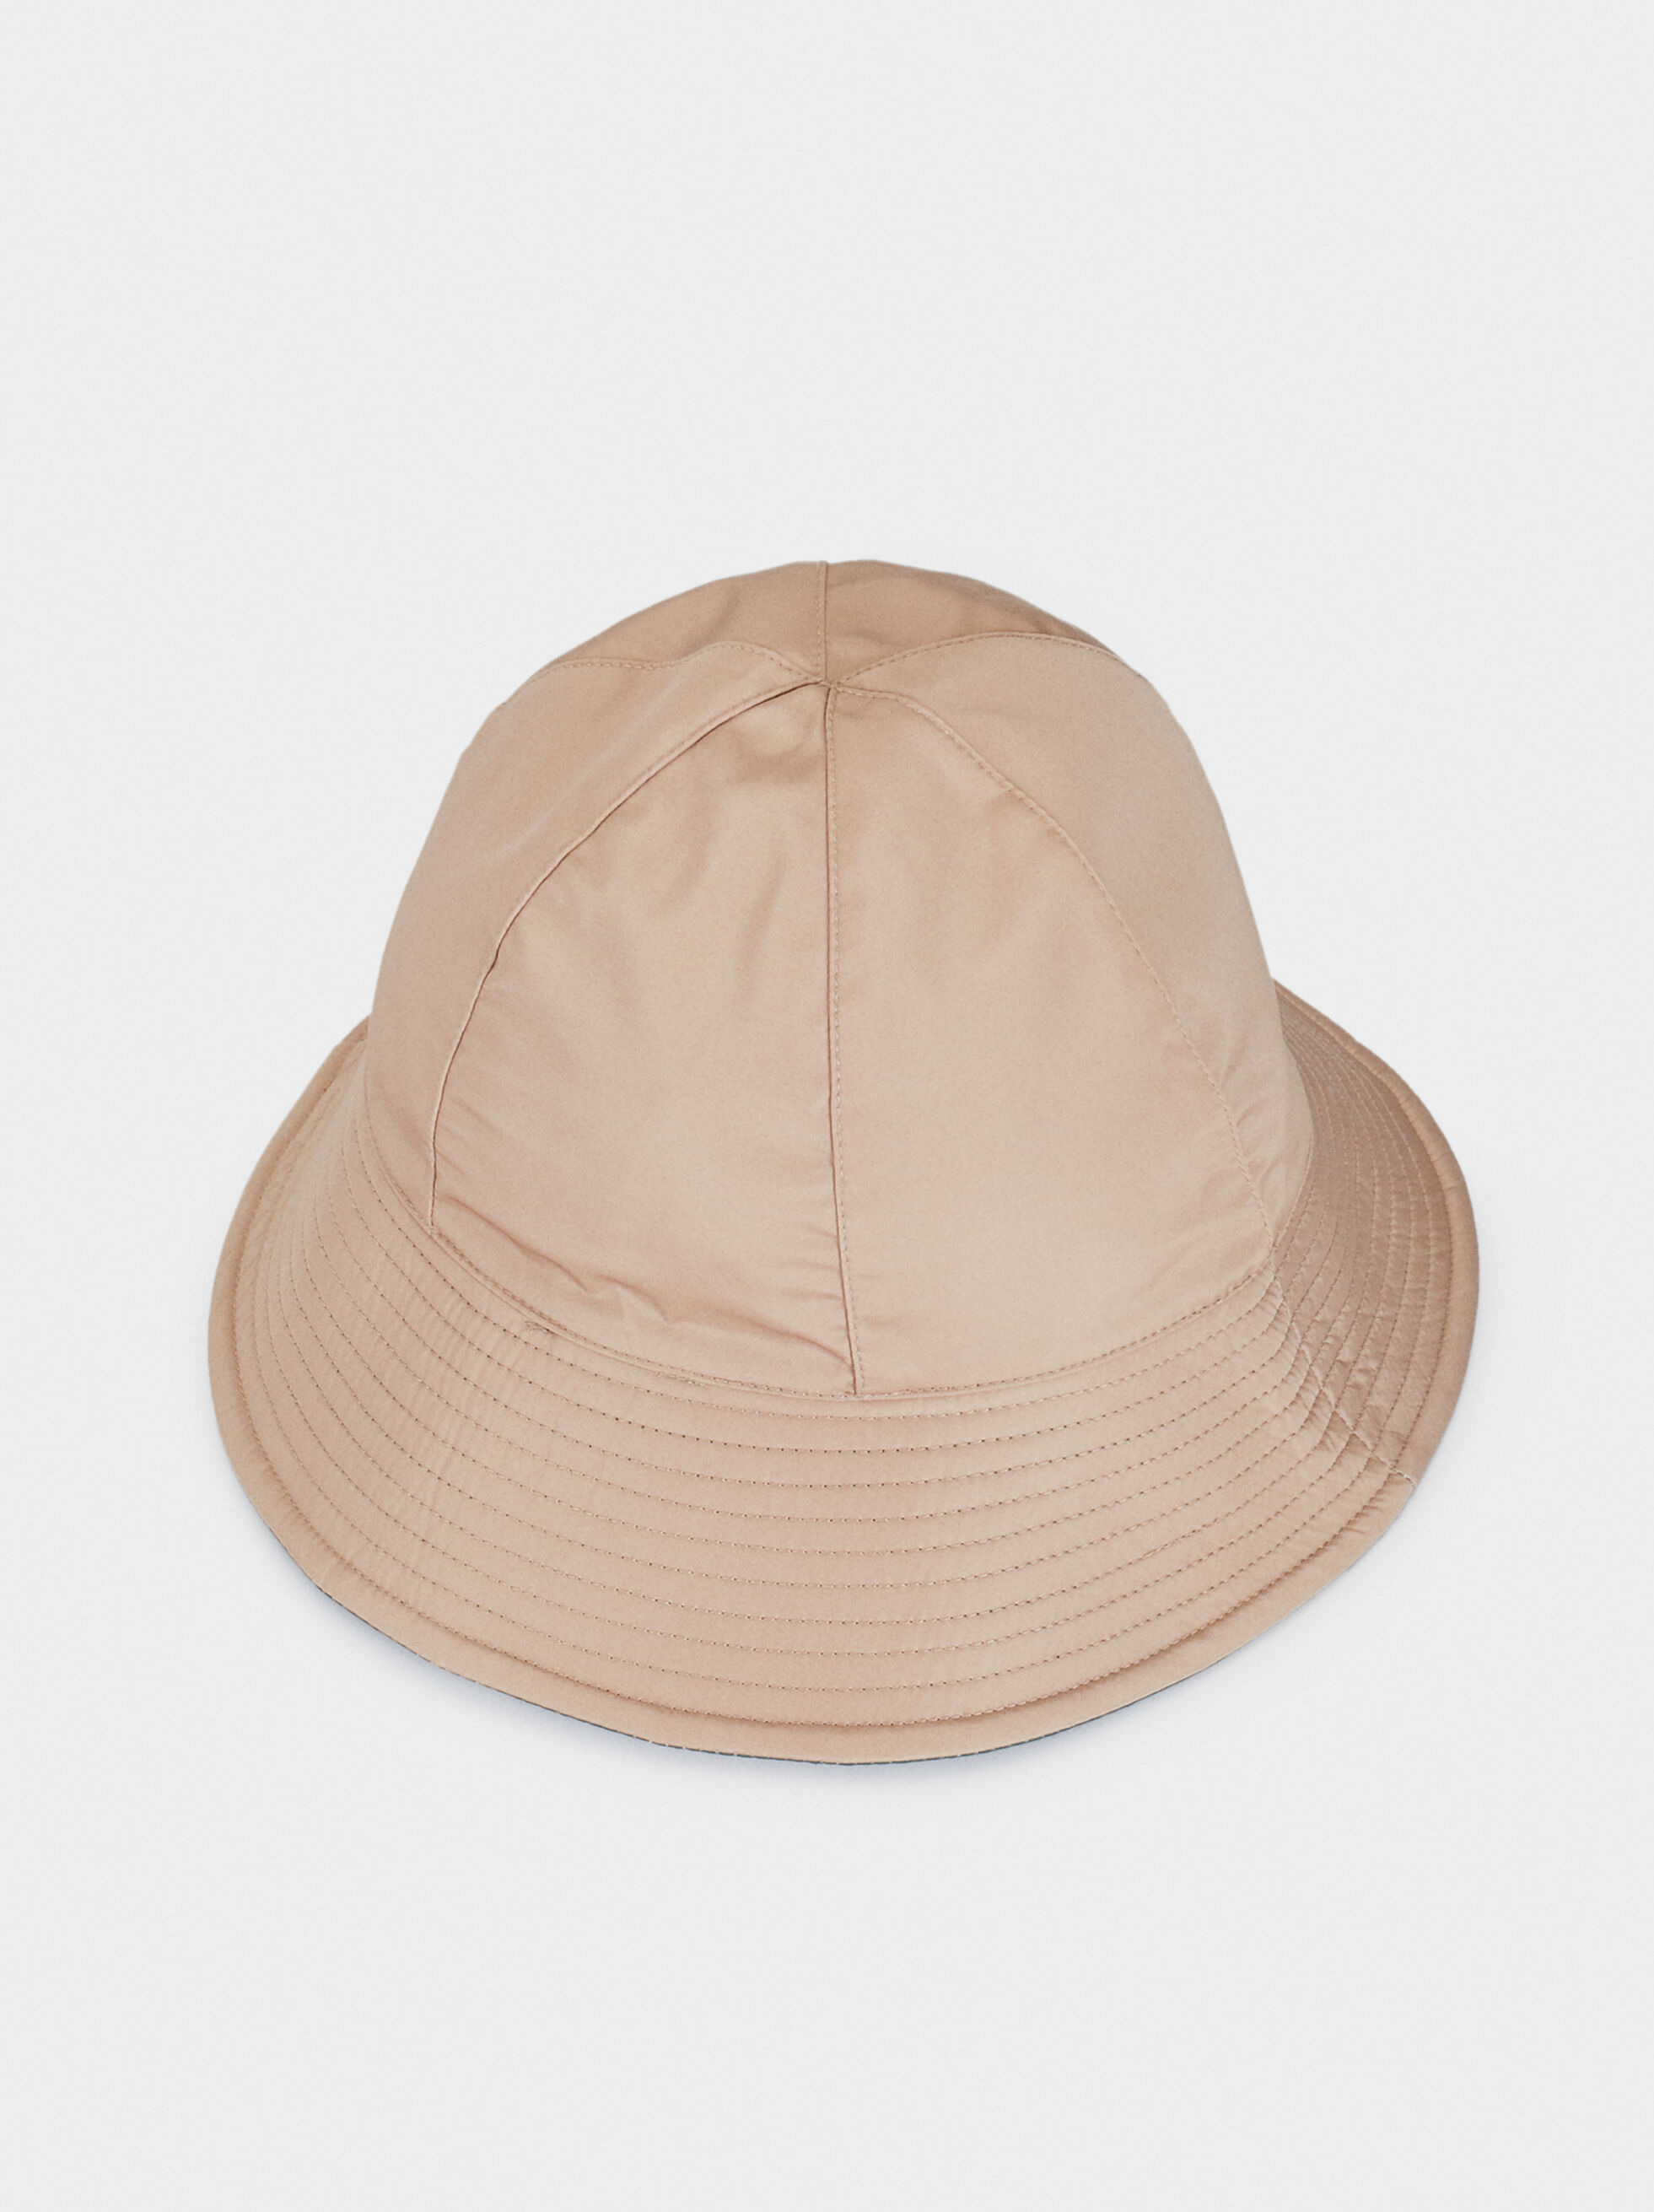 Waterproof Rain Hat, Beige, hi-res